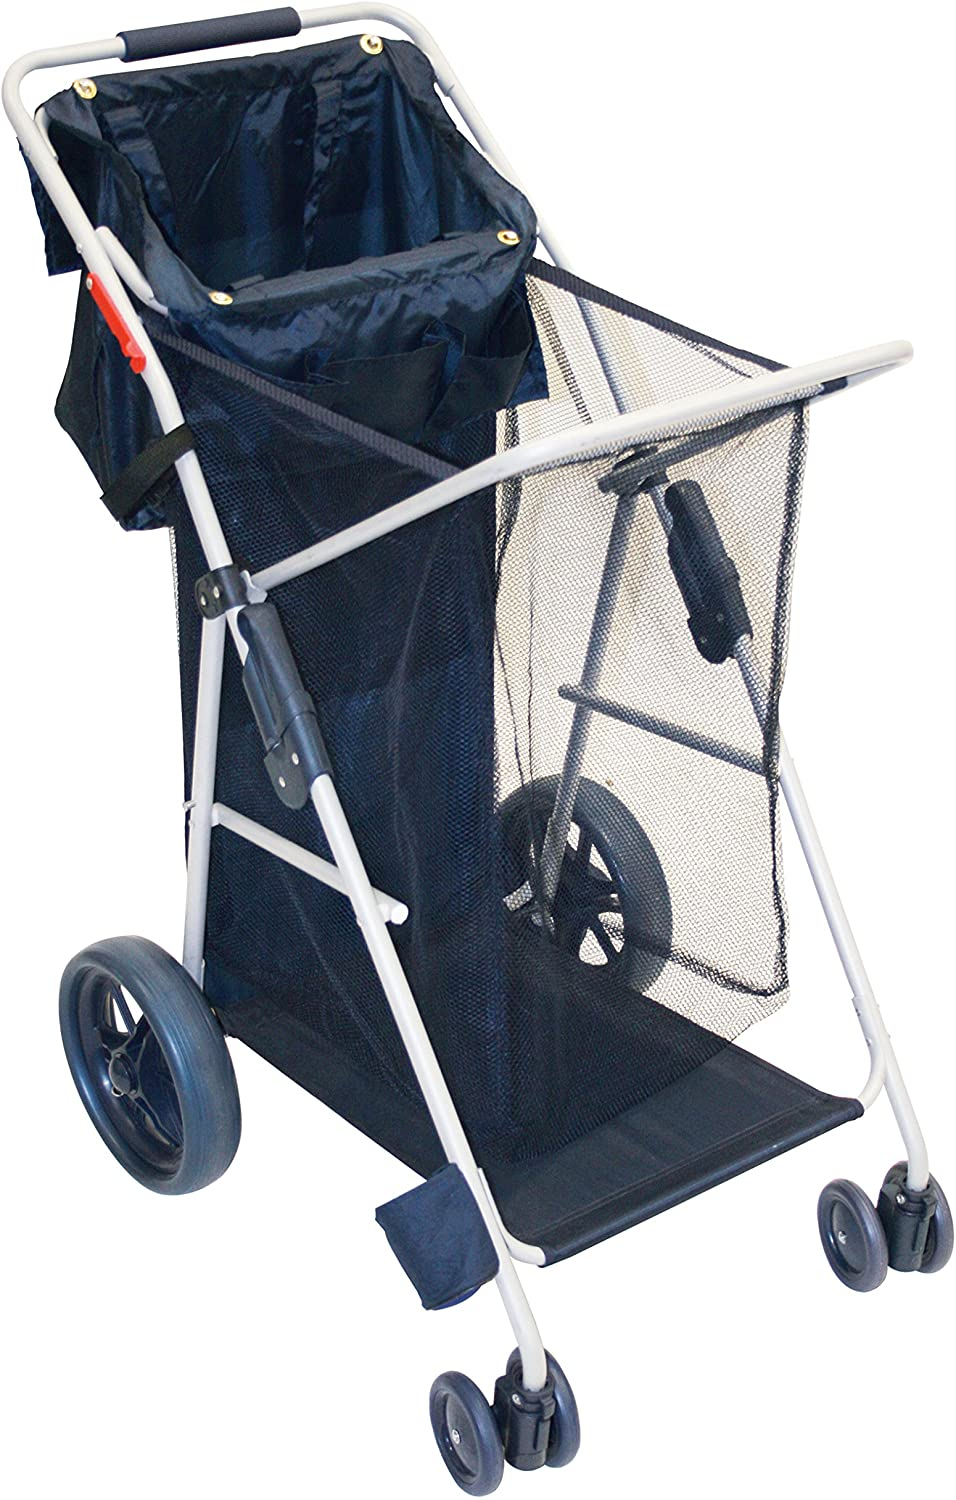 Rio Gear Deluxe Wonder Wheeler Folding Utility and Beach Cart, Navy